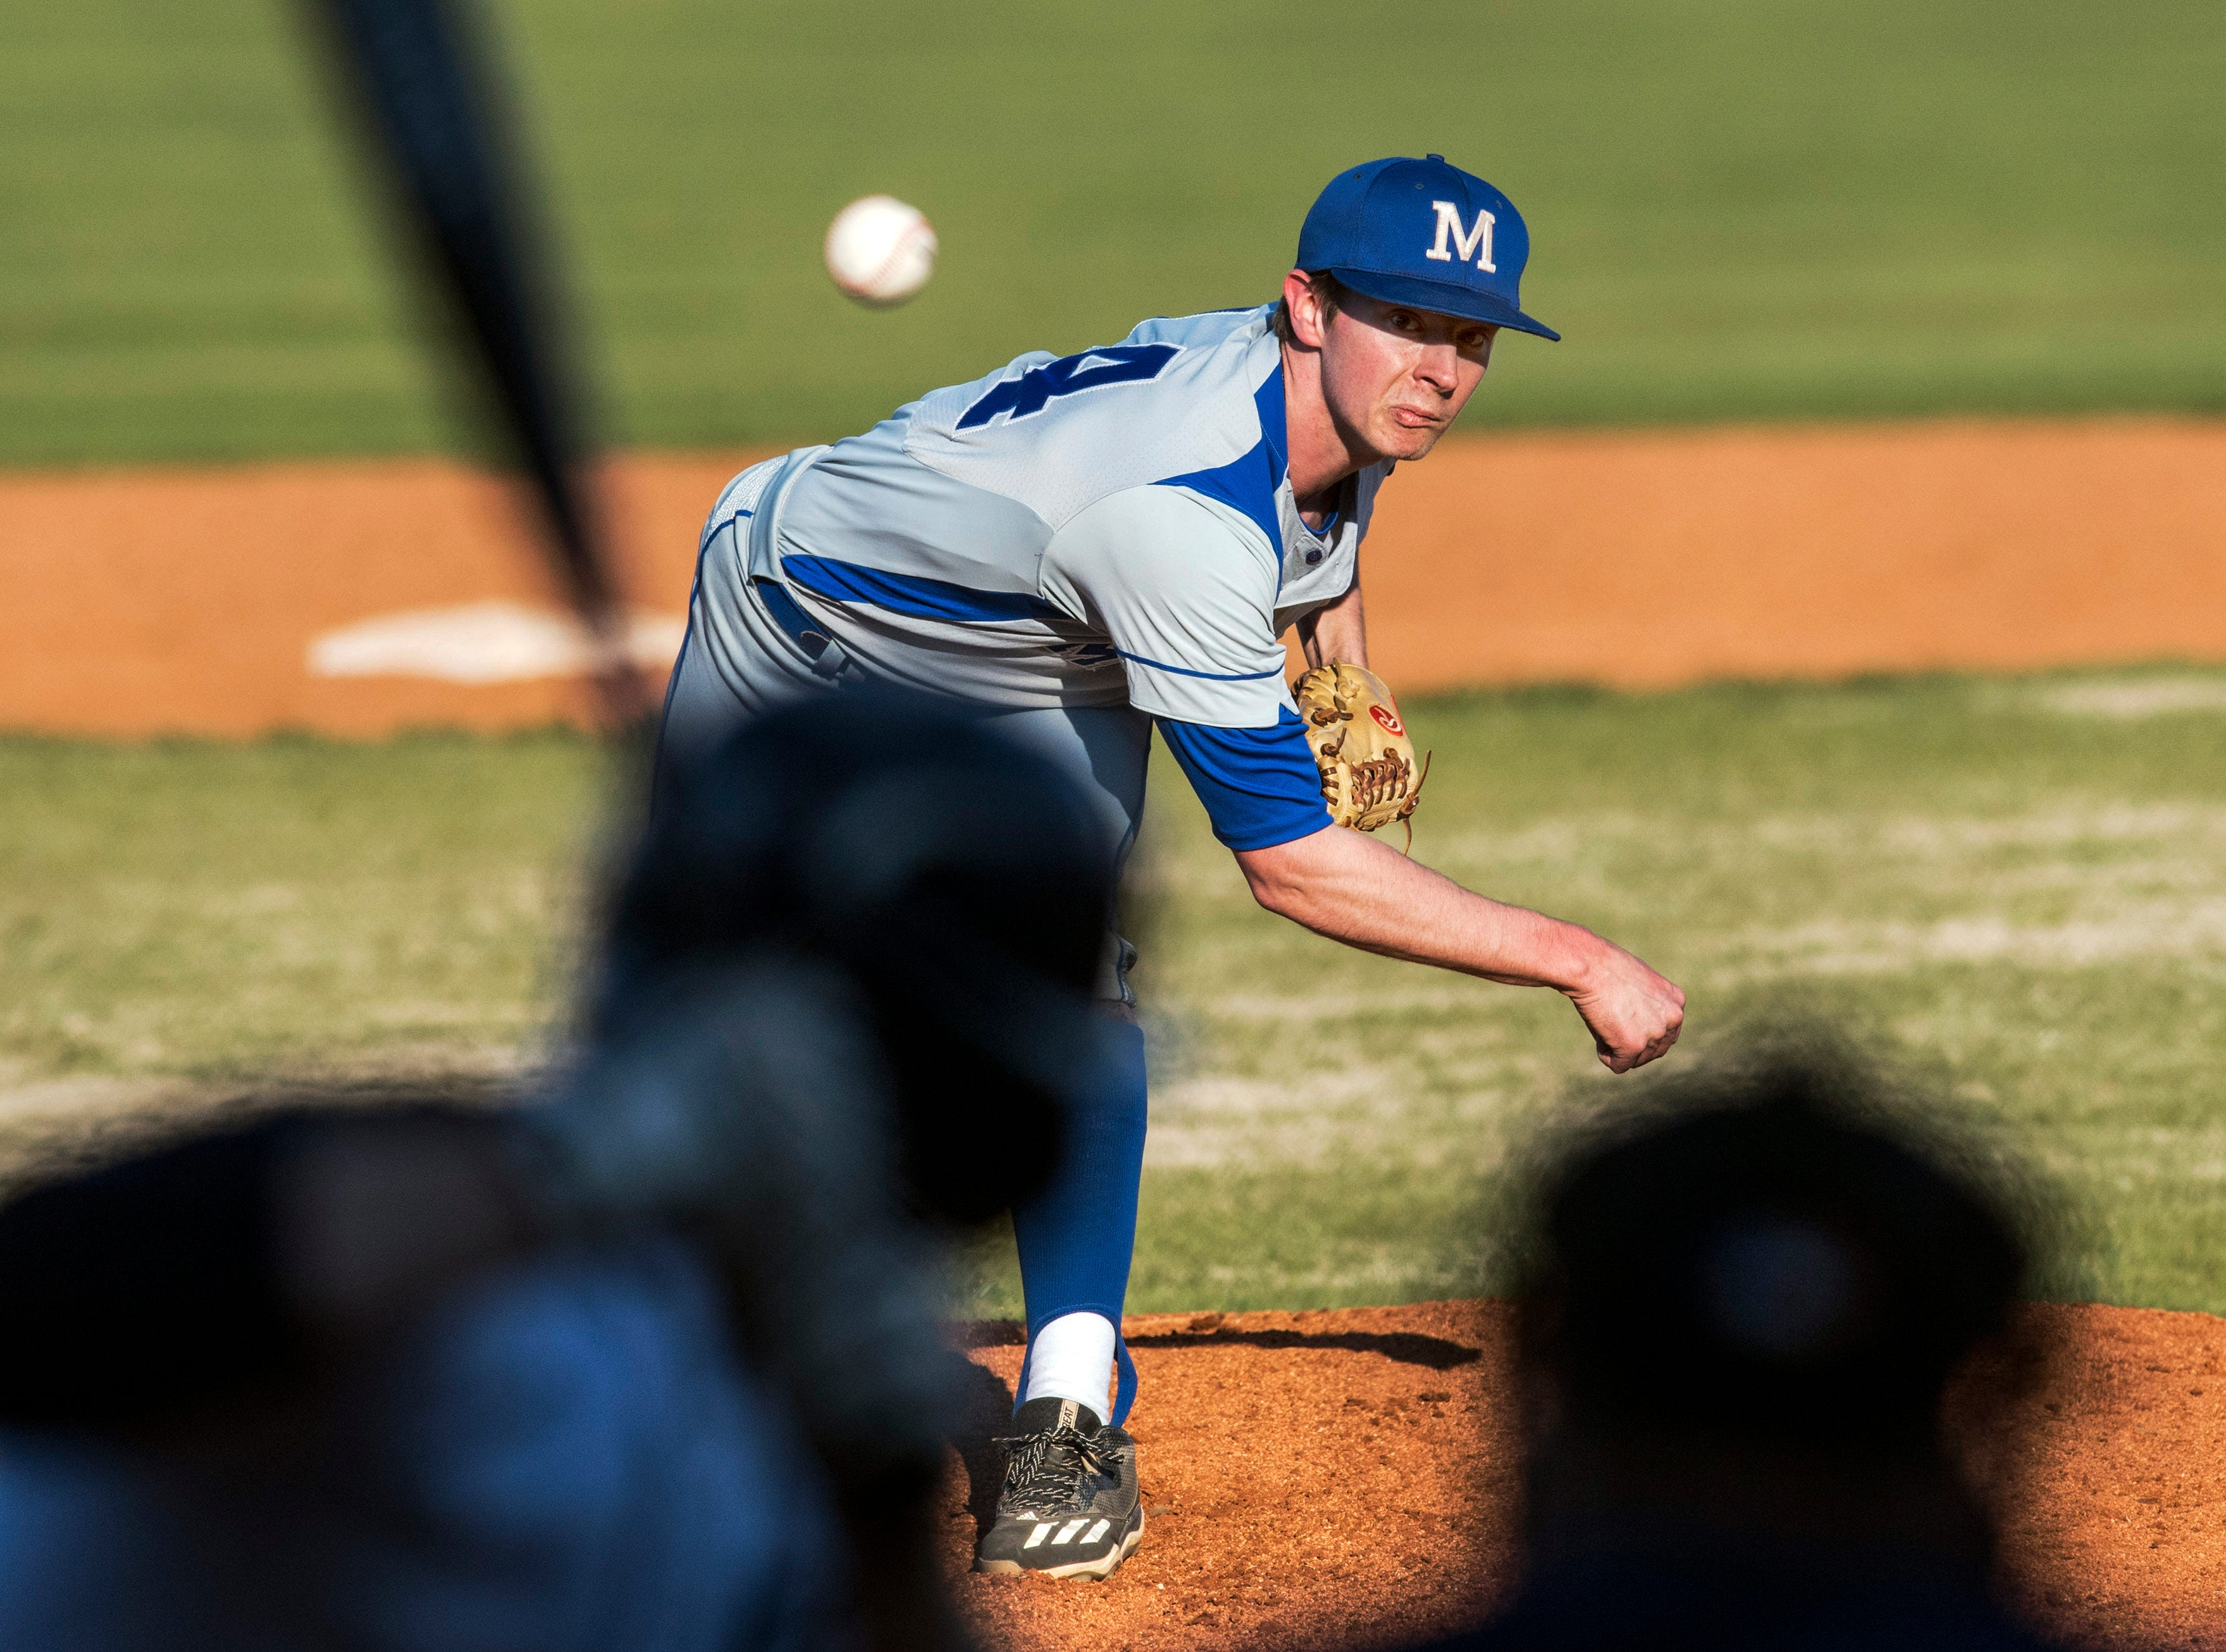 Memorial's Craig Karcher (14) pitches in the sixth inning of the Reitz Panthers vs Memorial Tigers game at Bosse Field in Evansville, Ind., Tuesday, April 2, 2019. The Memorial Tigers defeated the Reitz Panthers, 10-0.